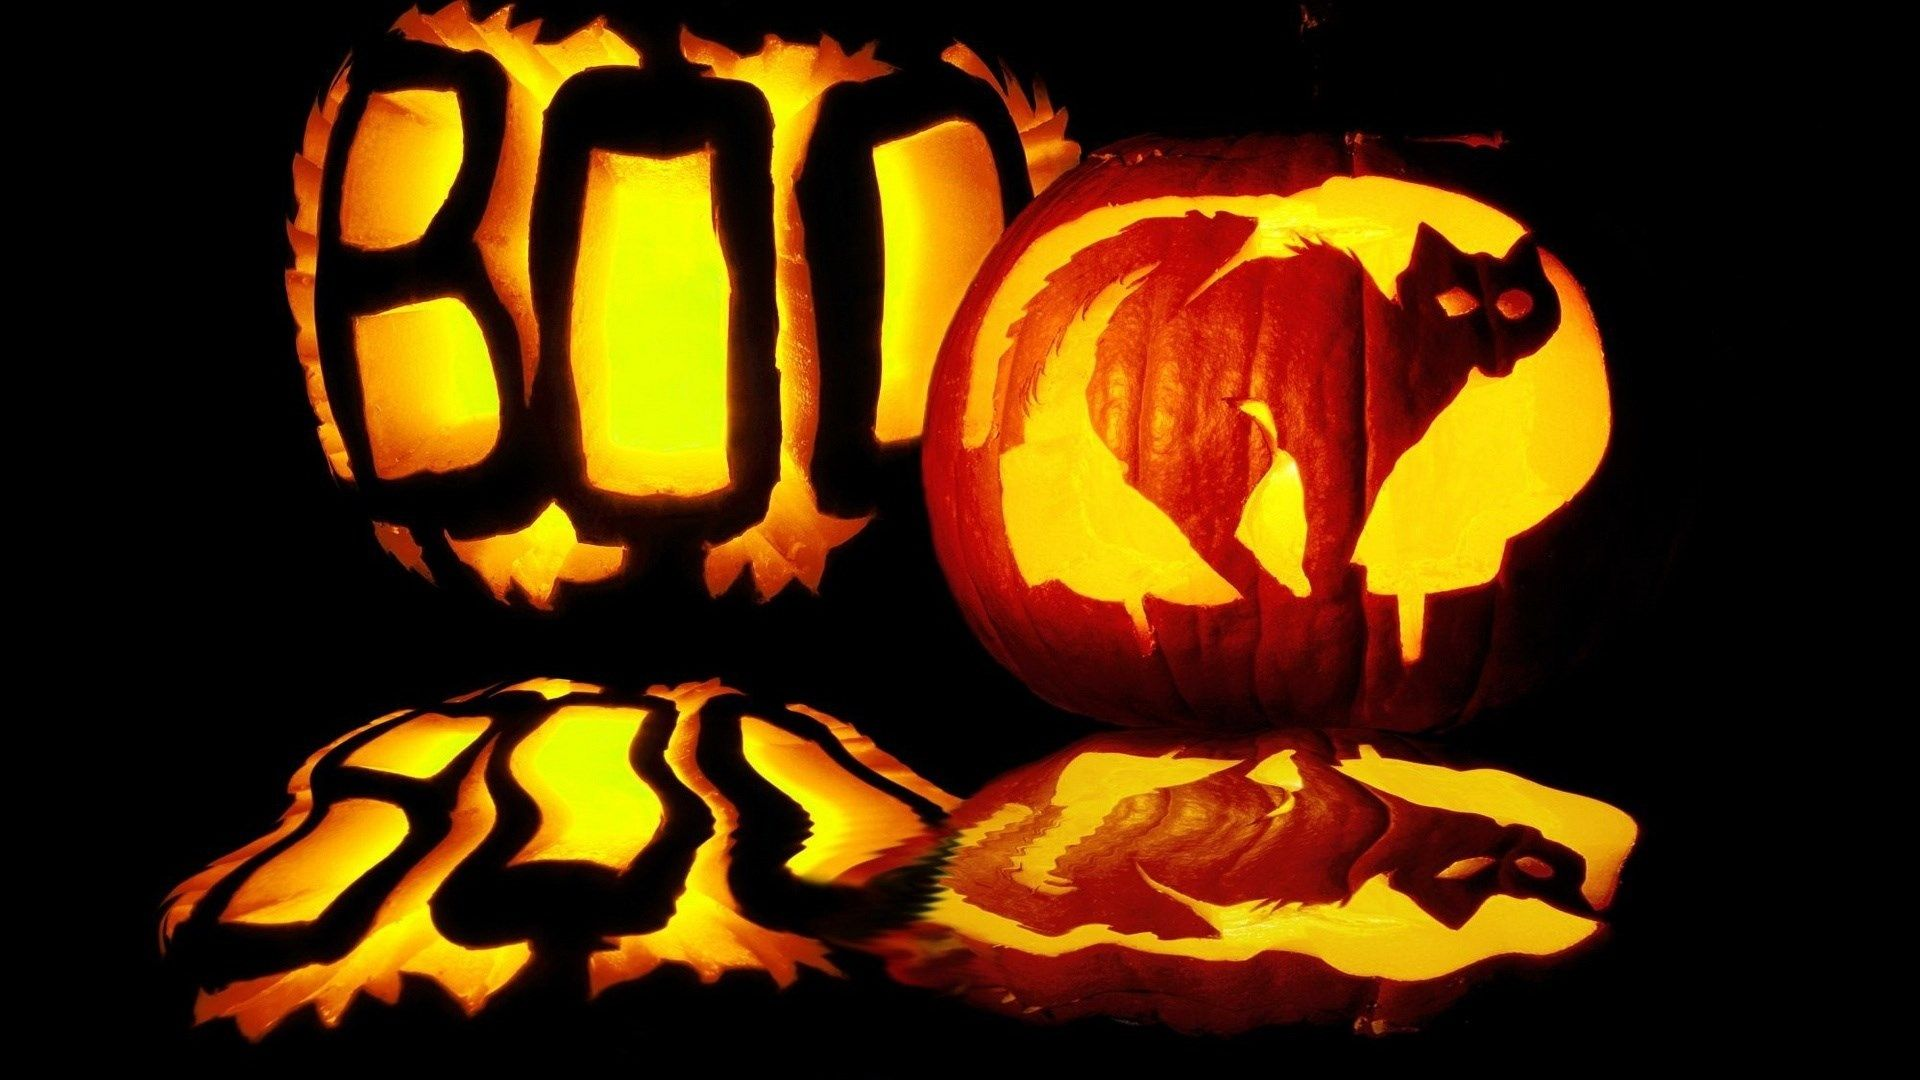 Must see Wallpaper Halloween Macbook - 6a5f9a4a577094ab8f95dd9f481a0877  Graphic_783975.jpg